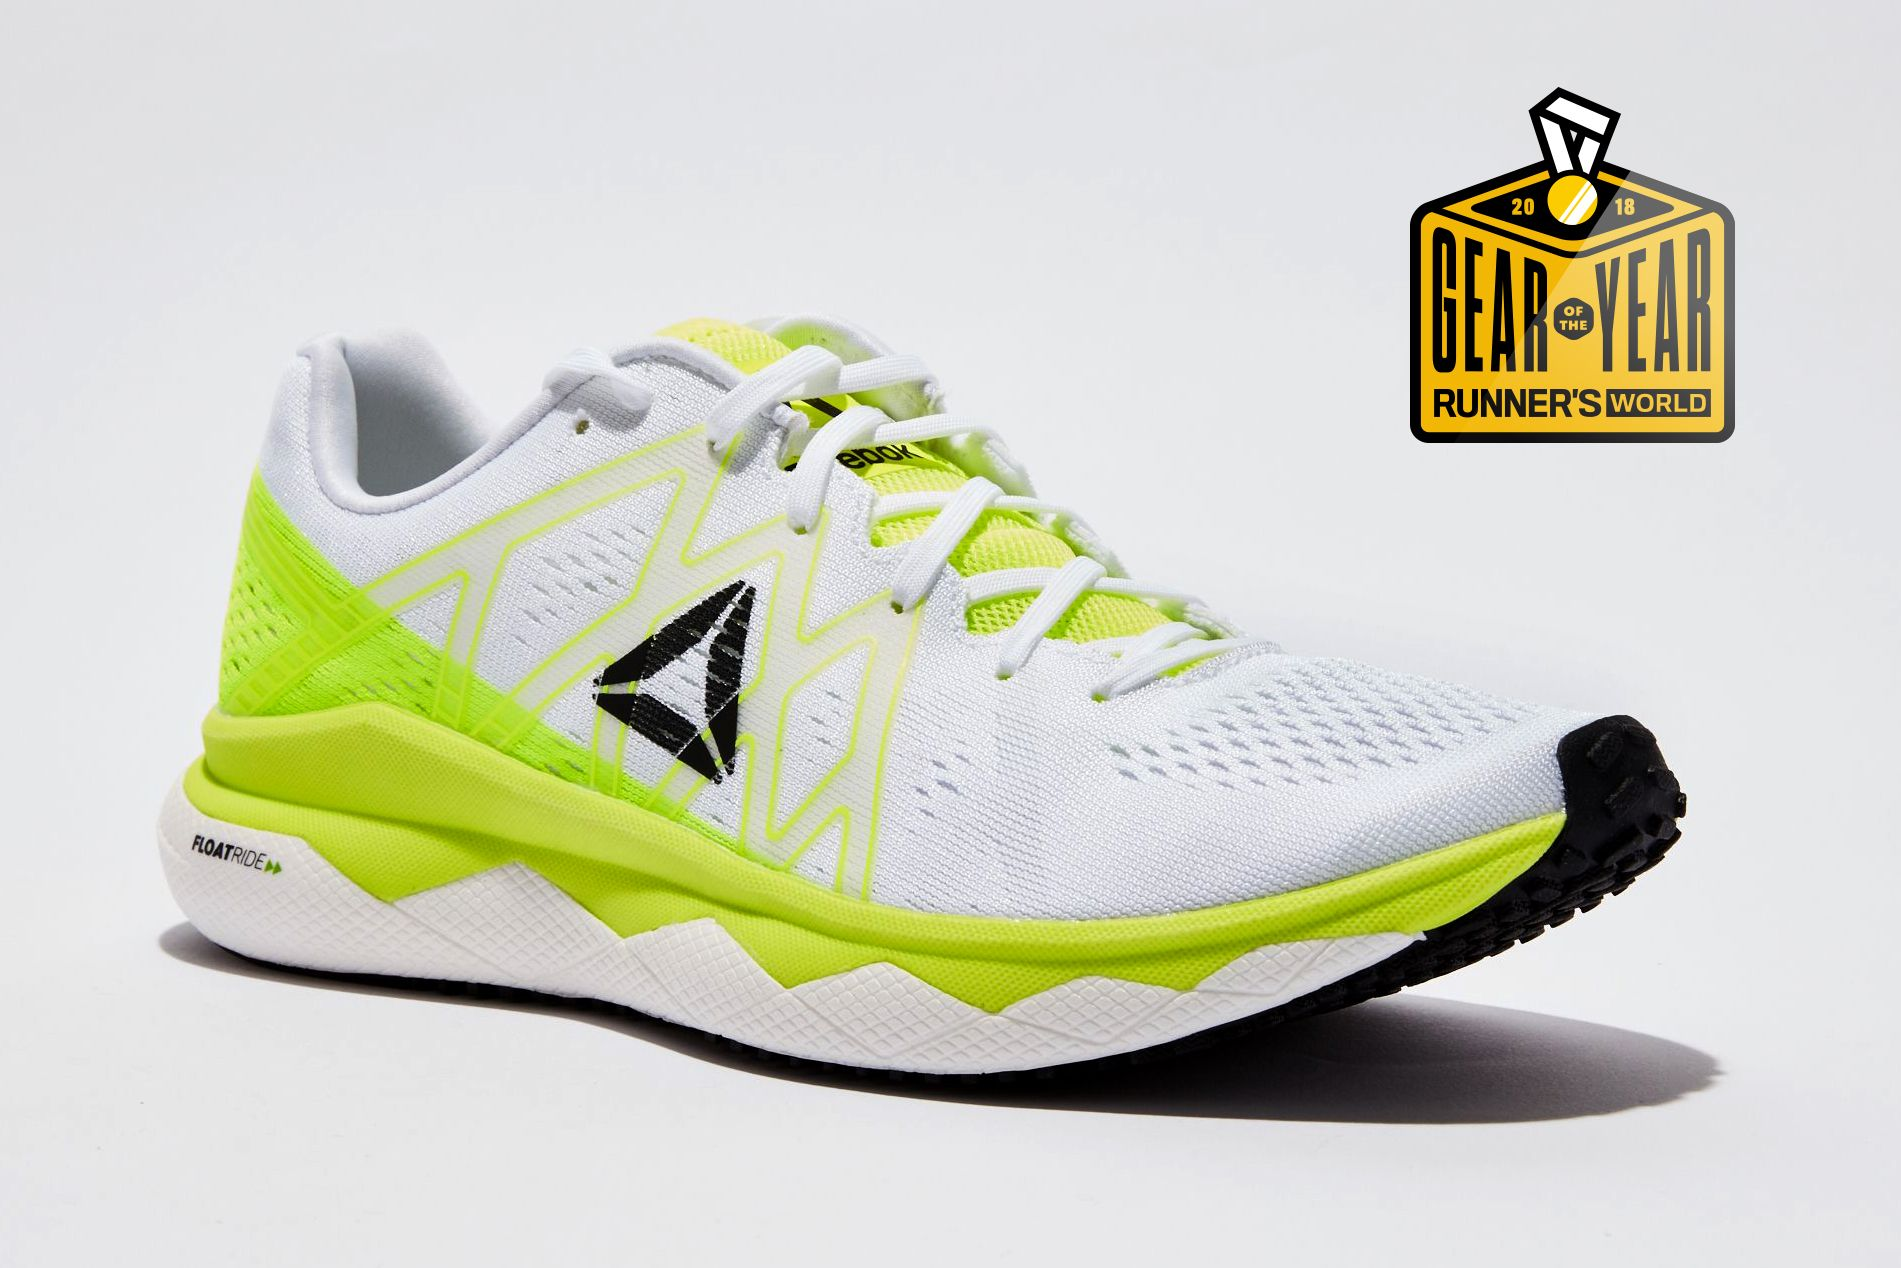 Lightweight Reebok Fast Review Floatride Shoes Run Running SGqMVpUz